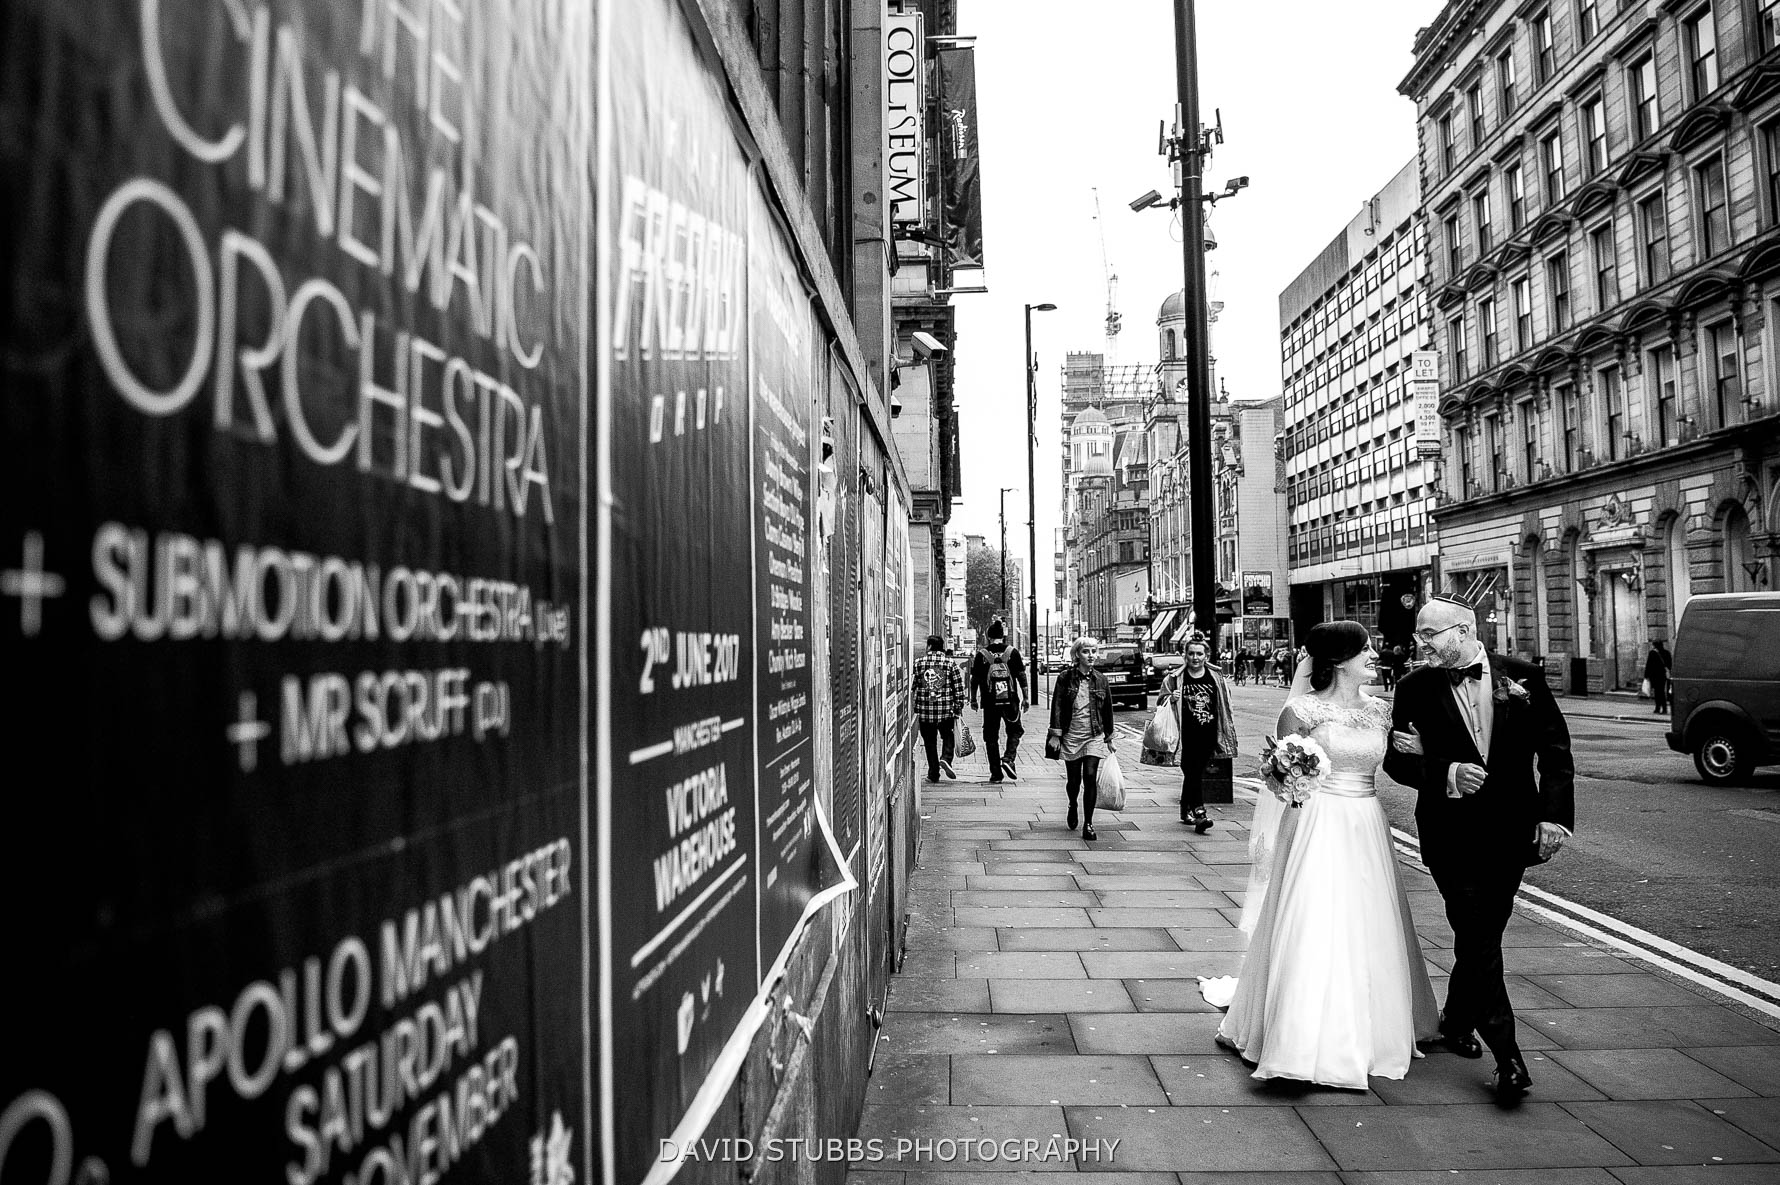 walking streets of manchester